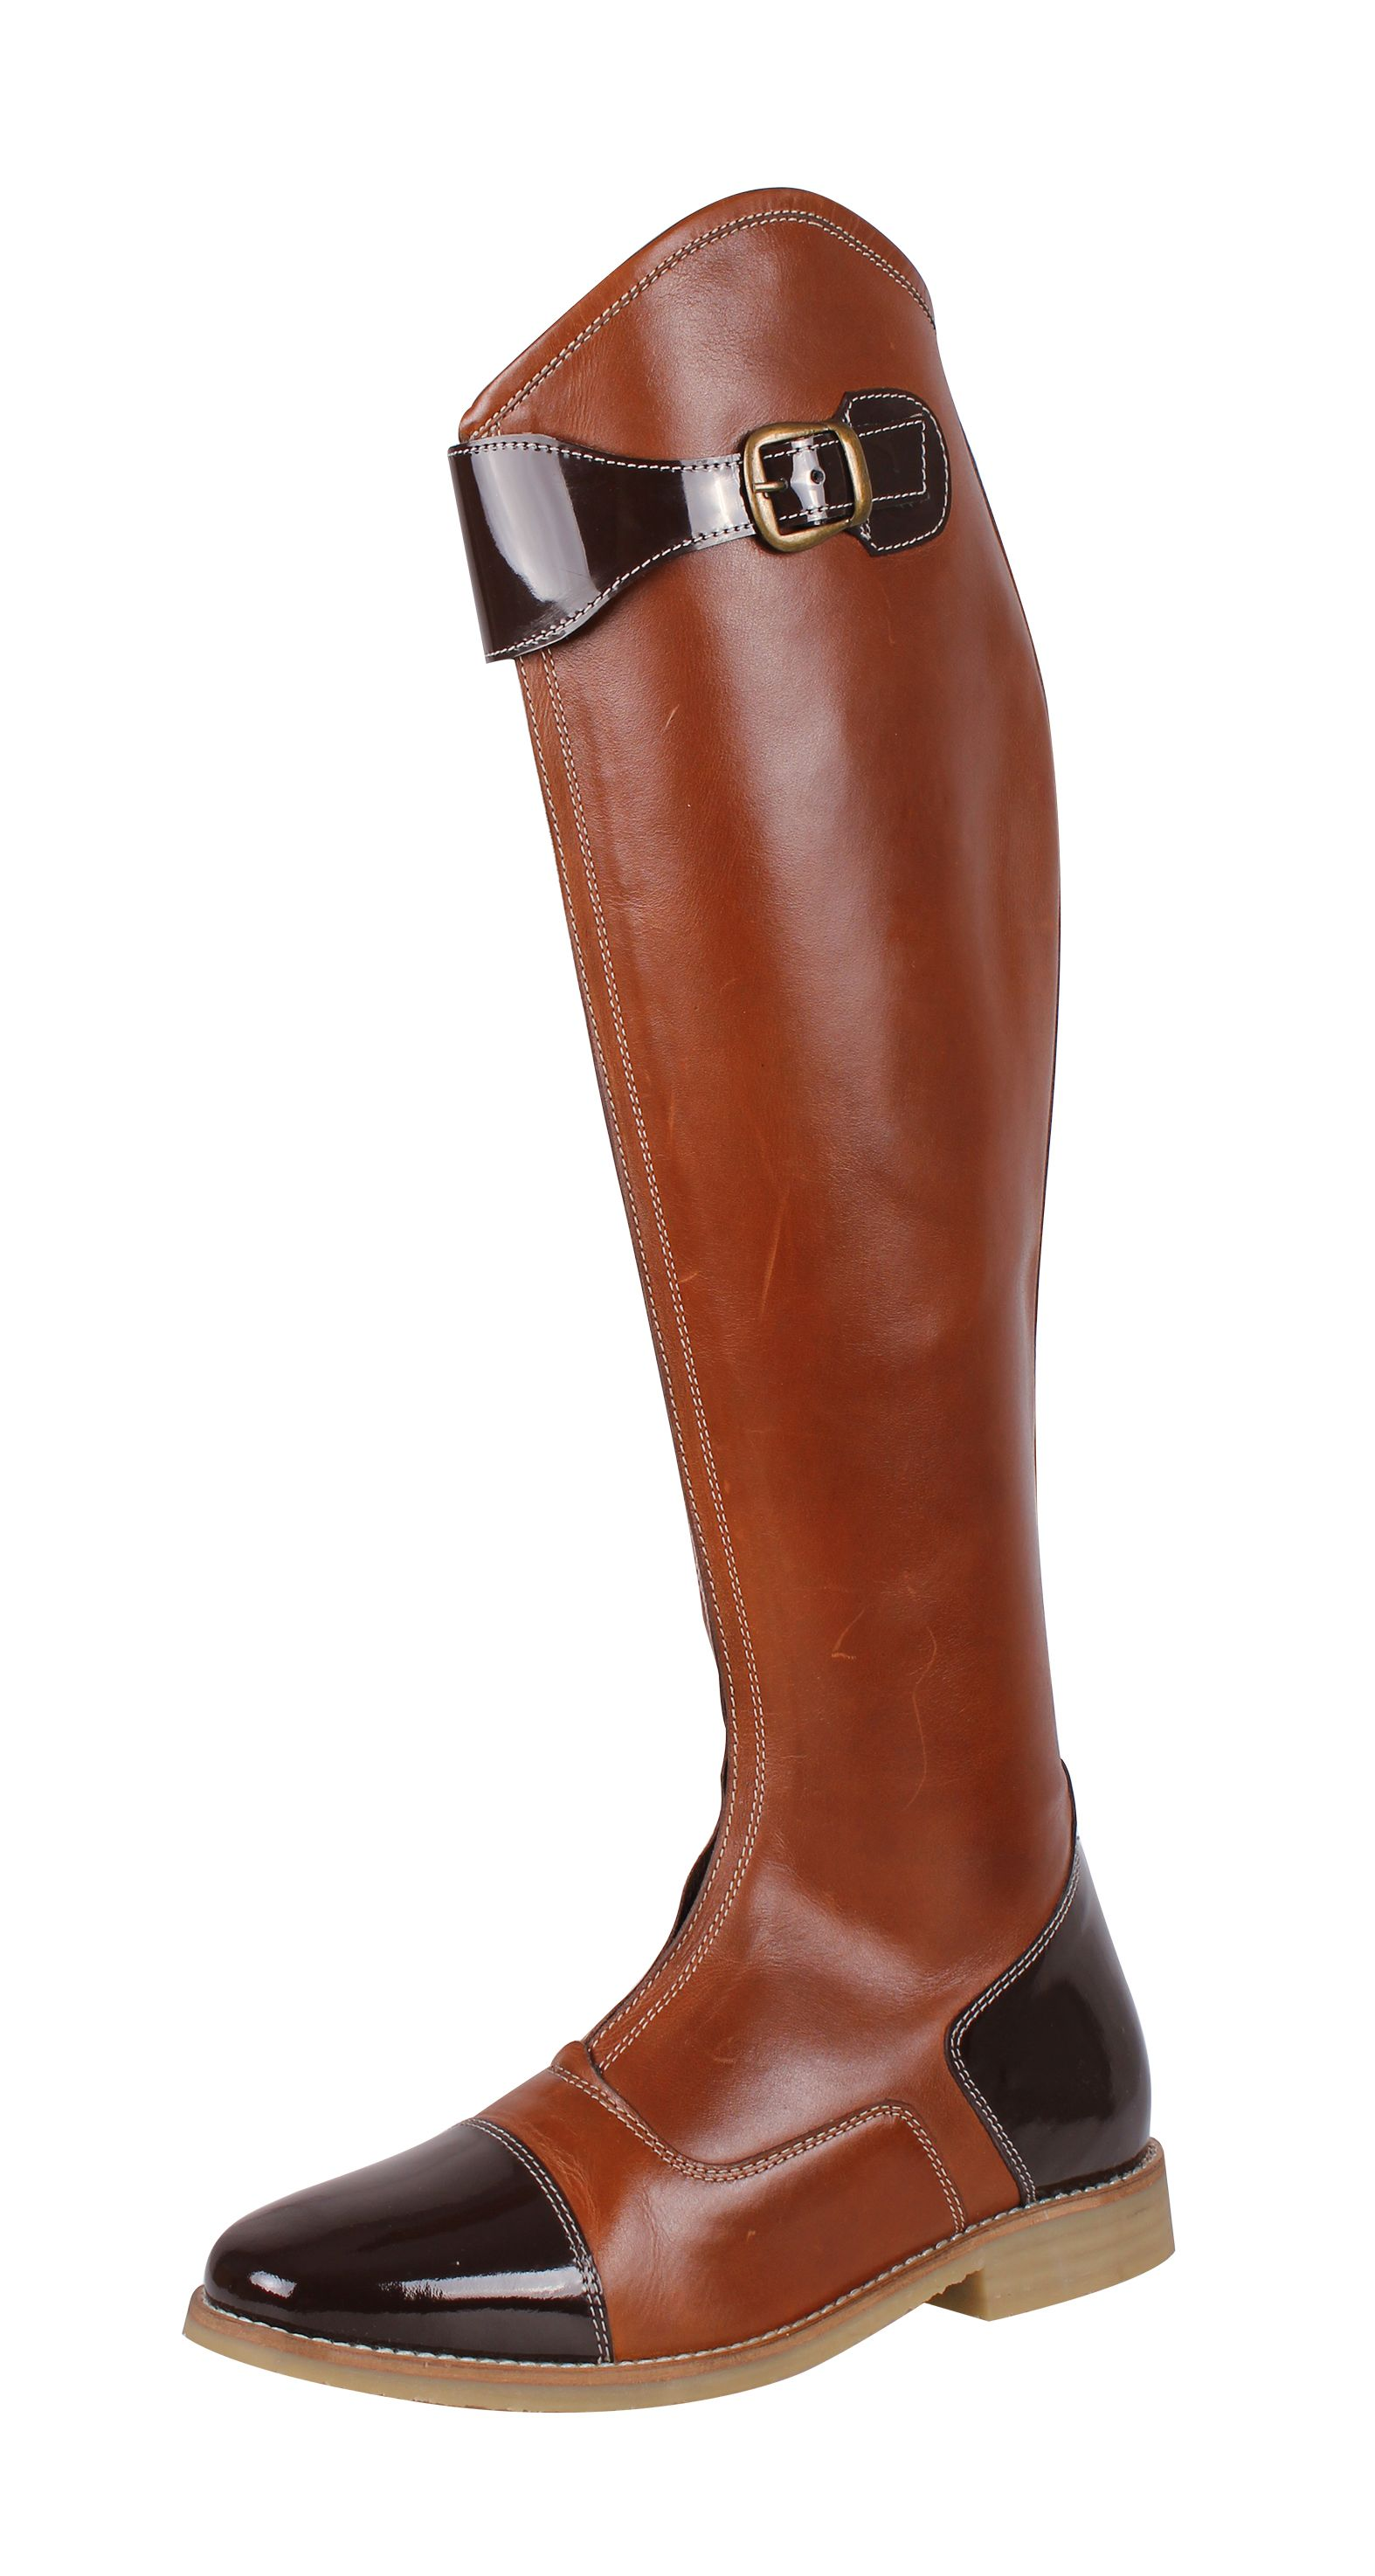 Riding boot features patent leather accentsWith zipper at the front and contrast stitchingThe boot is equiped with a barely visible elastic strip next to the zipperAlso available in wide calf (art.nr. 7104)